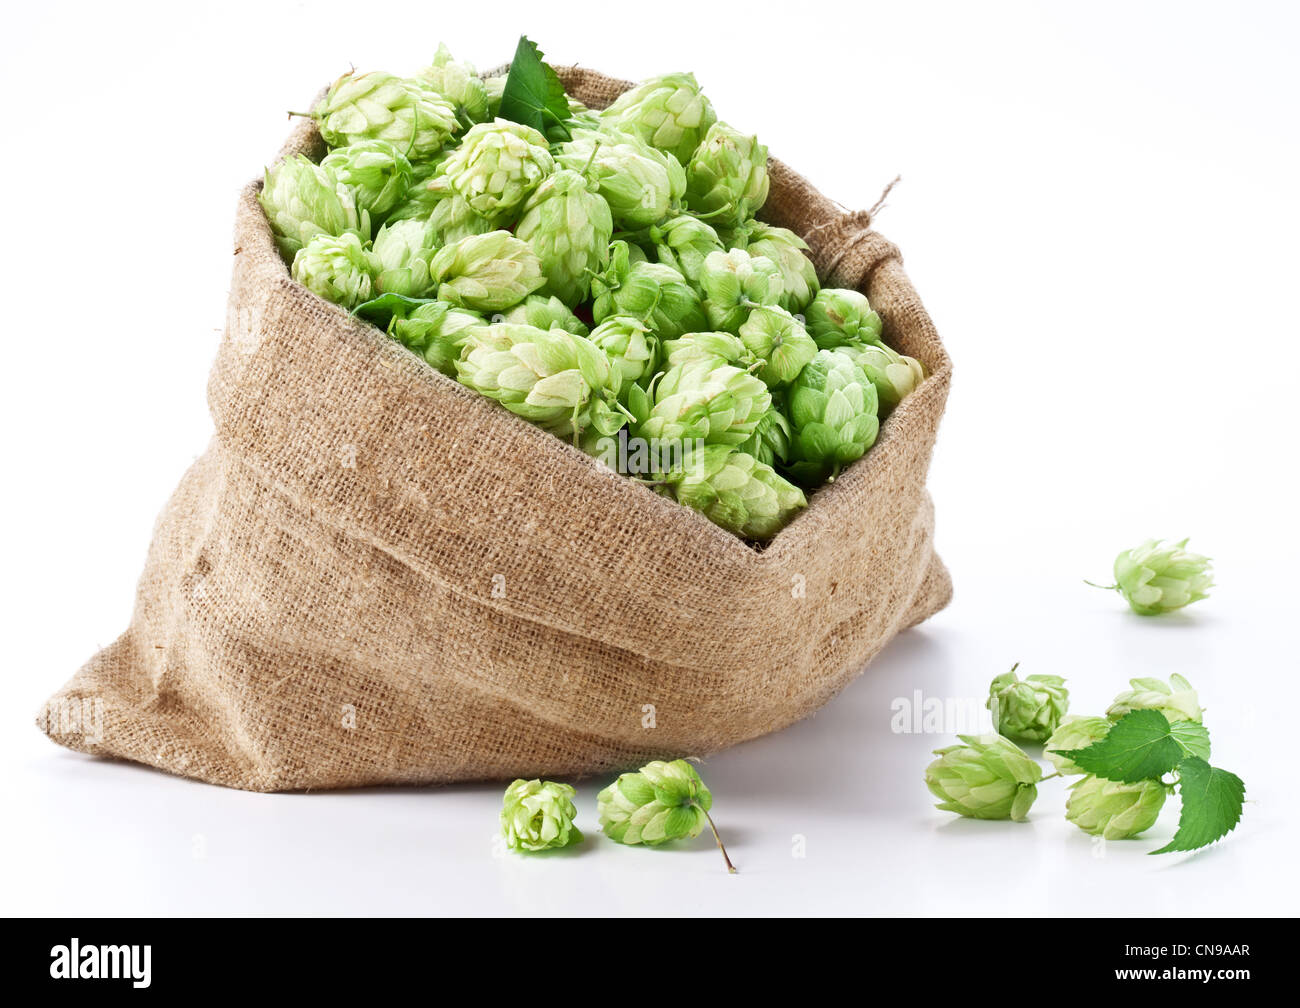 Sack of hops on a white background. - Stock Image